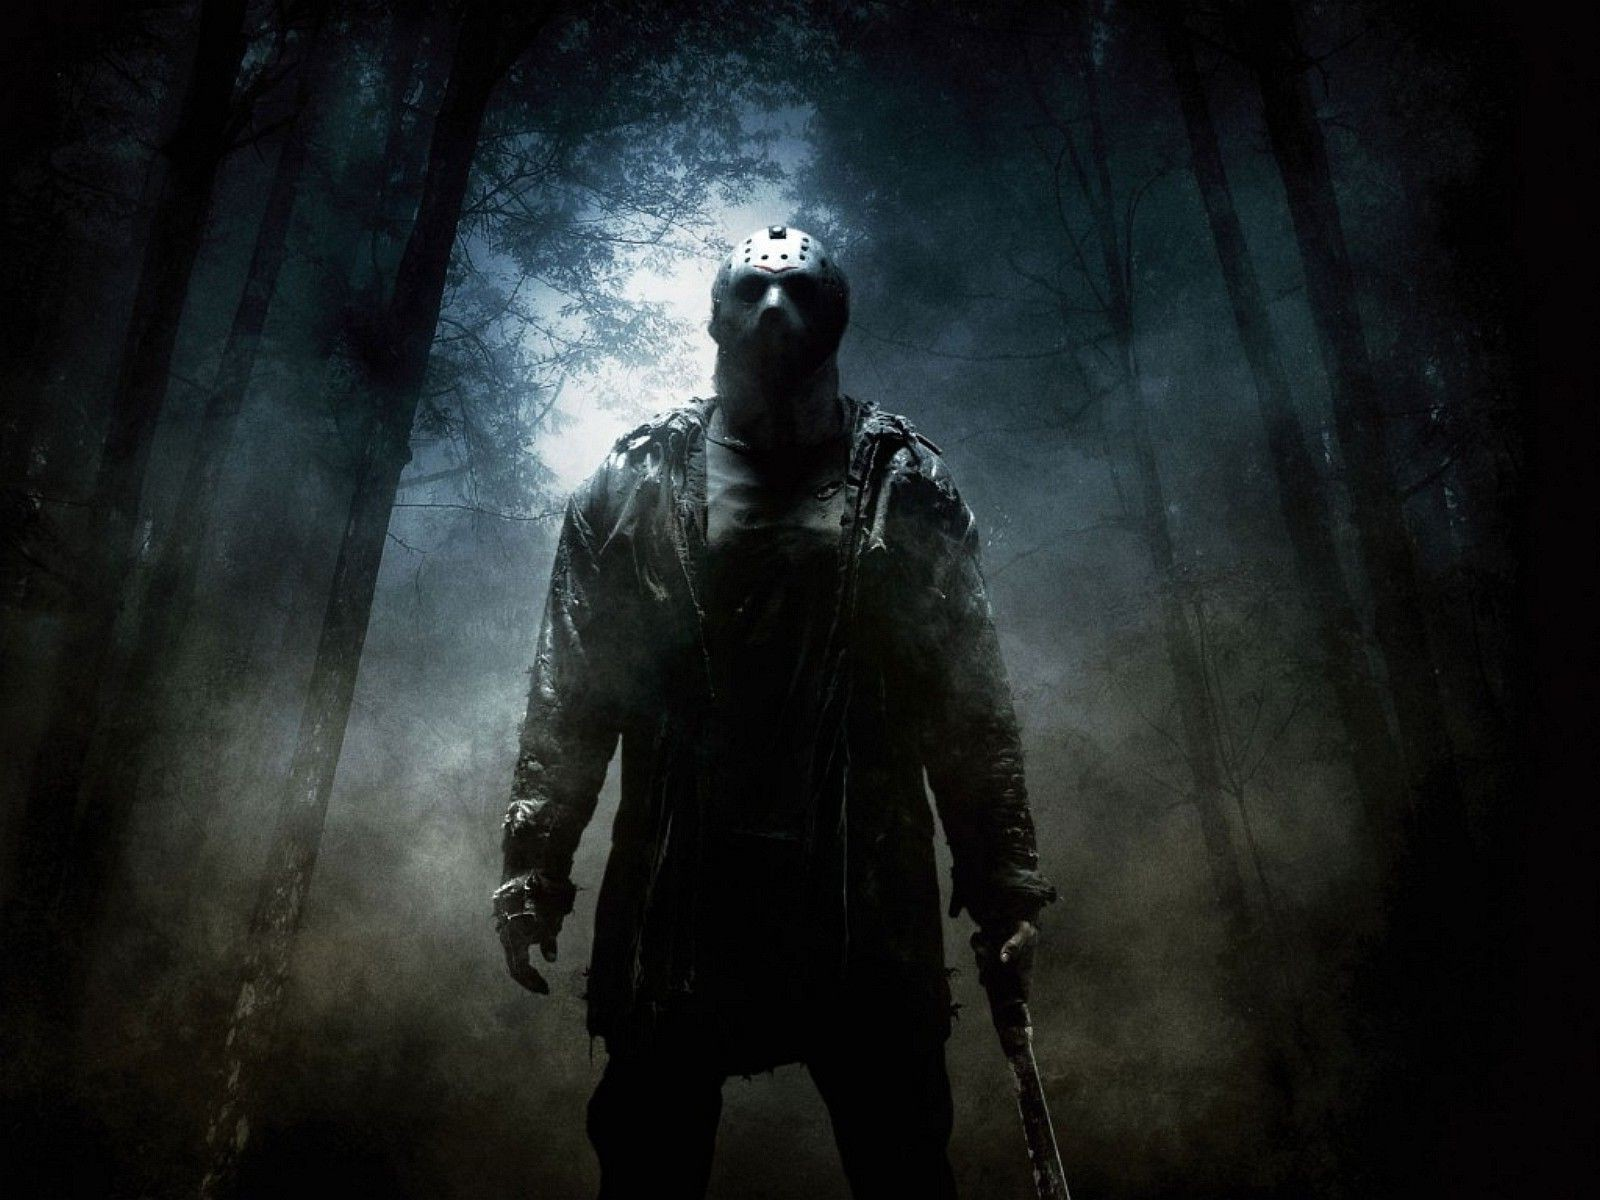 friday the 13th the game has new content slashed due to messy